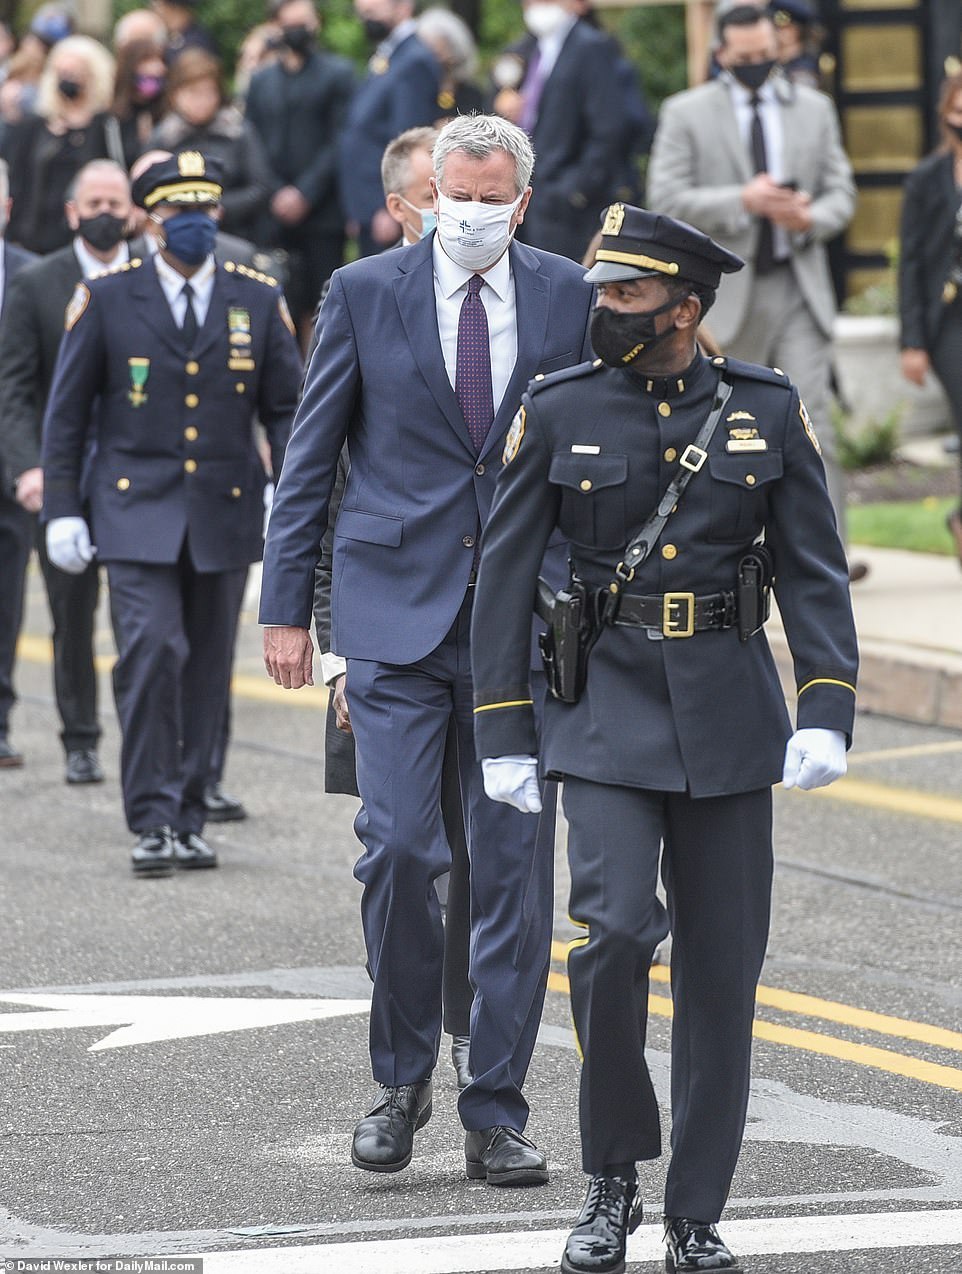 NYPD cop is posthumously promoted to detective at funeral after he was killed by 'drunk driver', Swahili Post